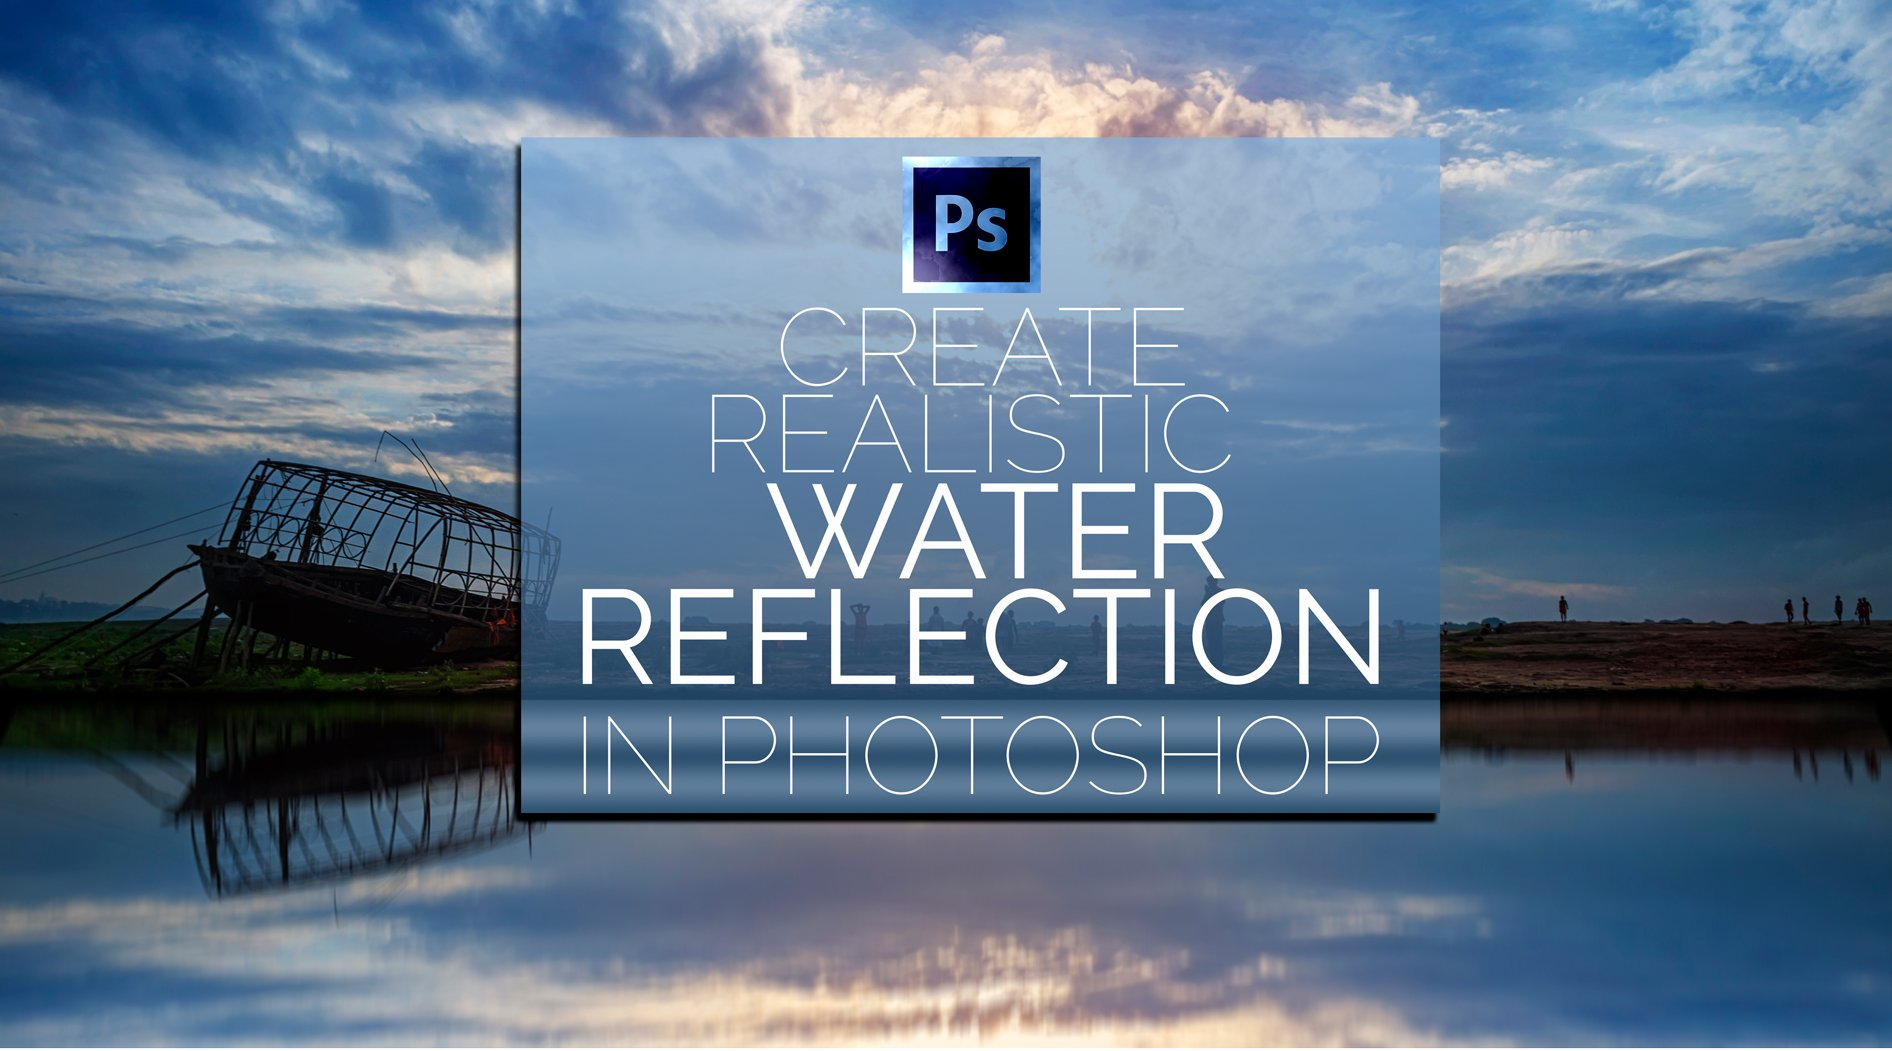 How to create realistic water reflection in adobe photoshop how to create realistic water reflection in adobe photoshop harshvardhan roy skillshare baditri Choice Image